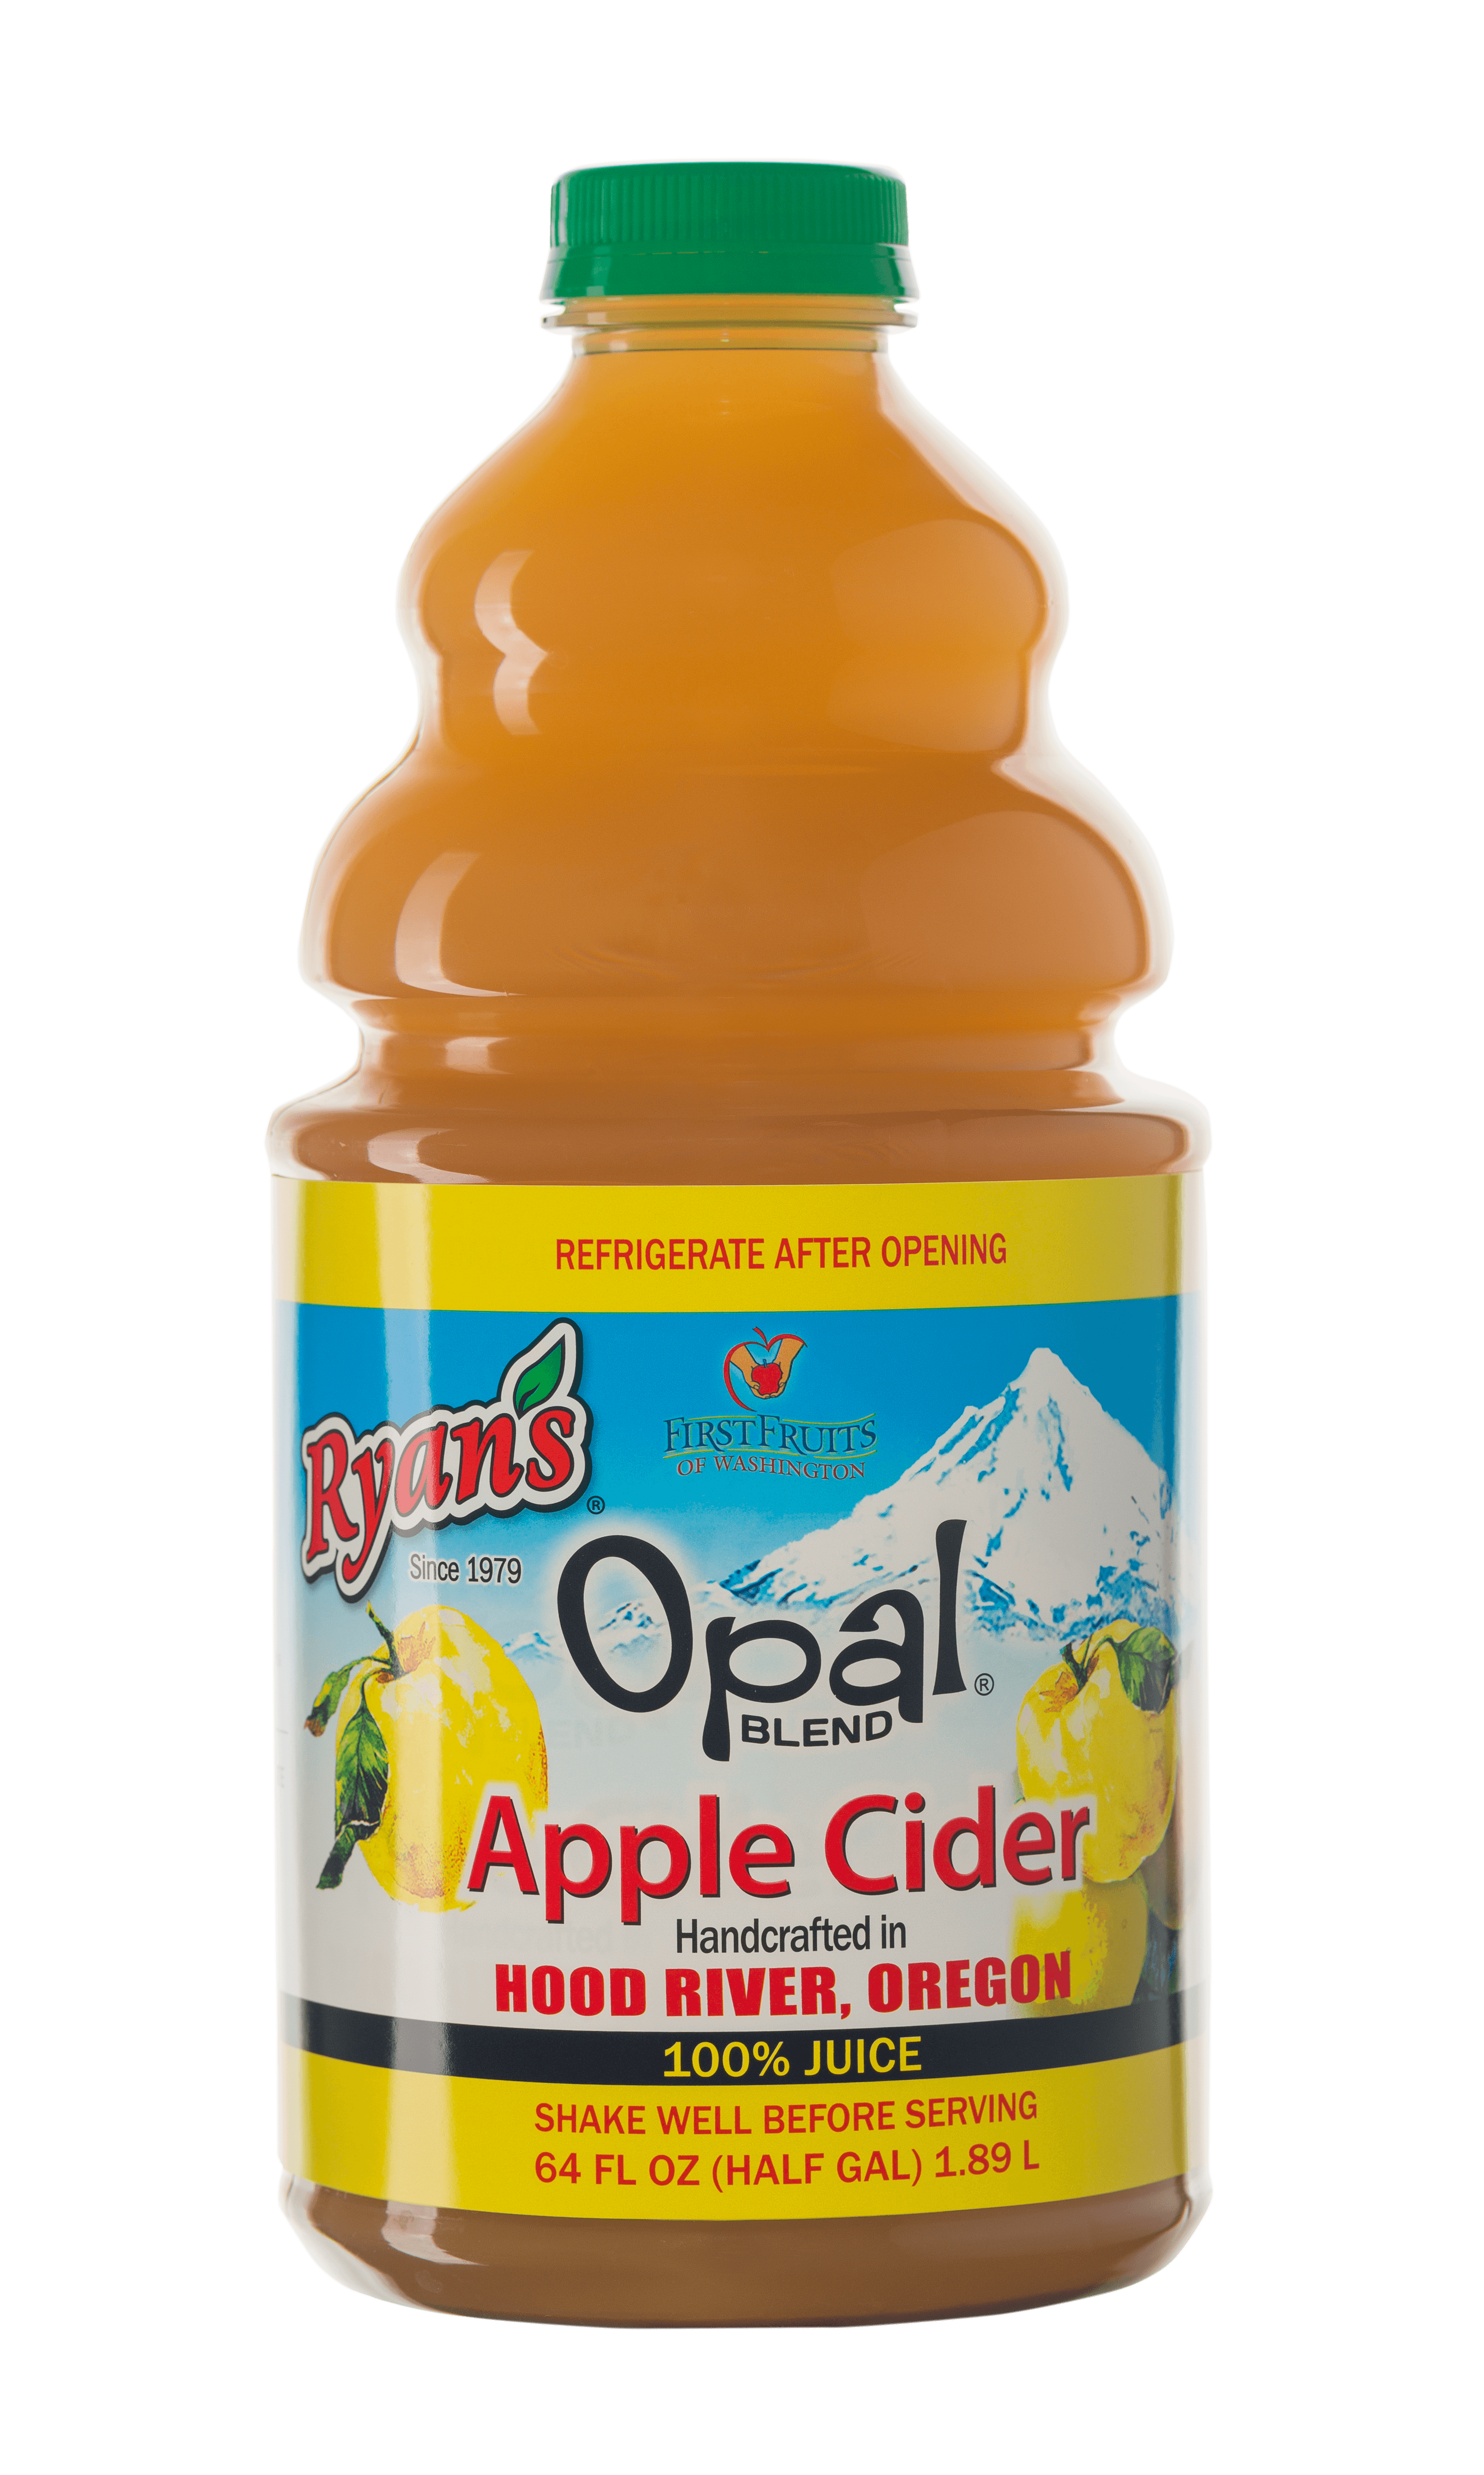 Our Products - Ryan's Apple Cider Opal